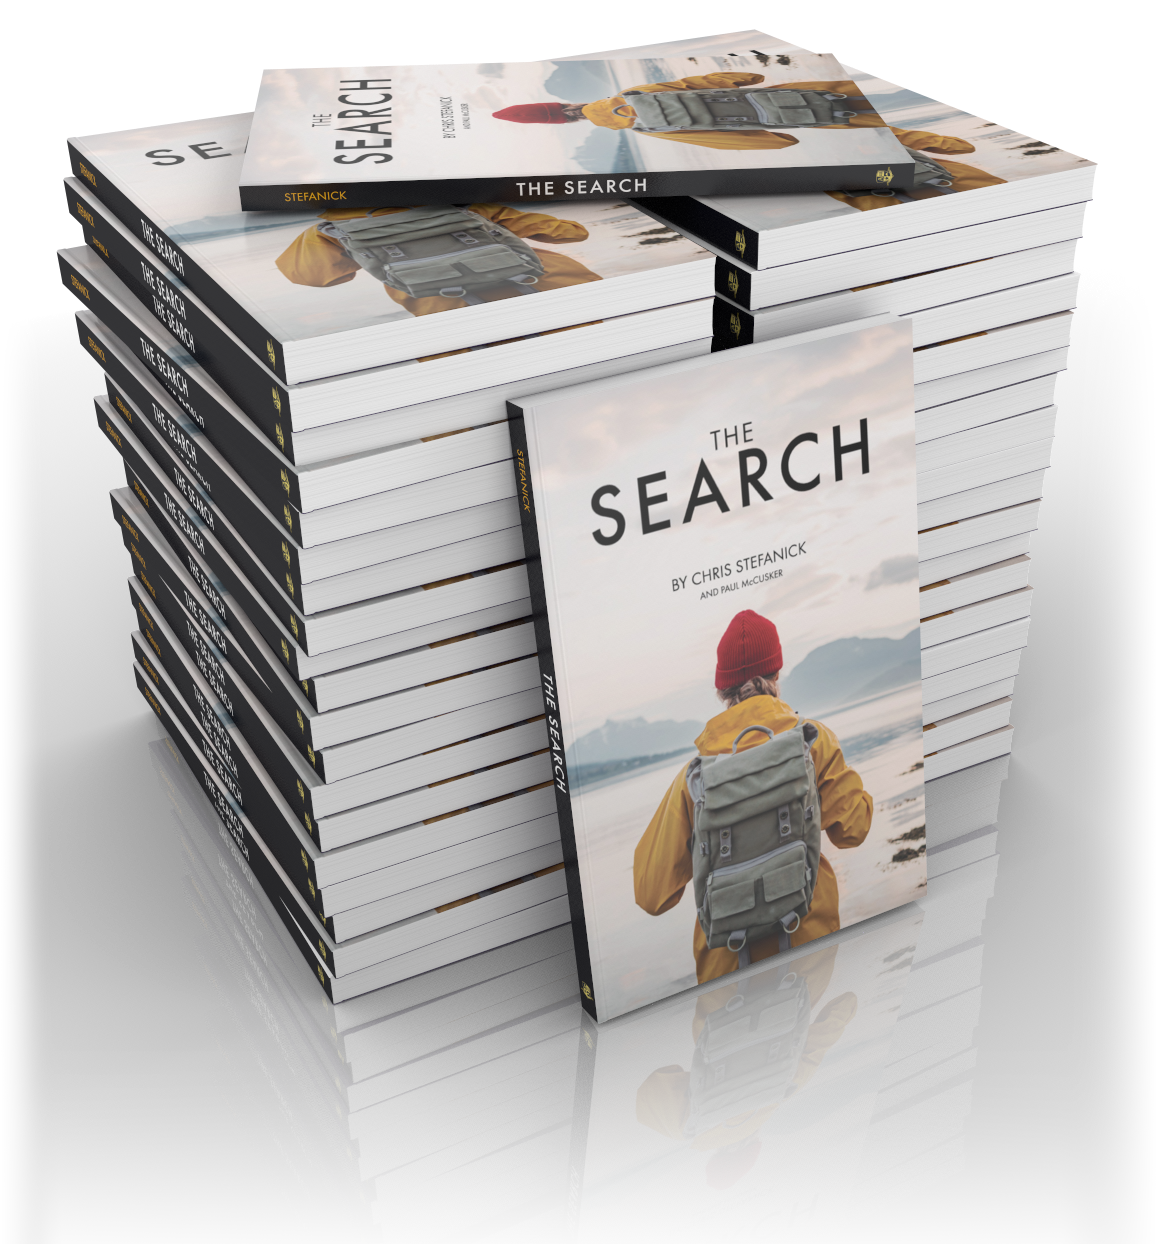 The Search (Case of 40) - Chris Stefanick and Paul McCusker